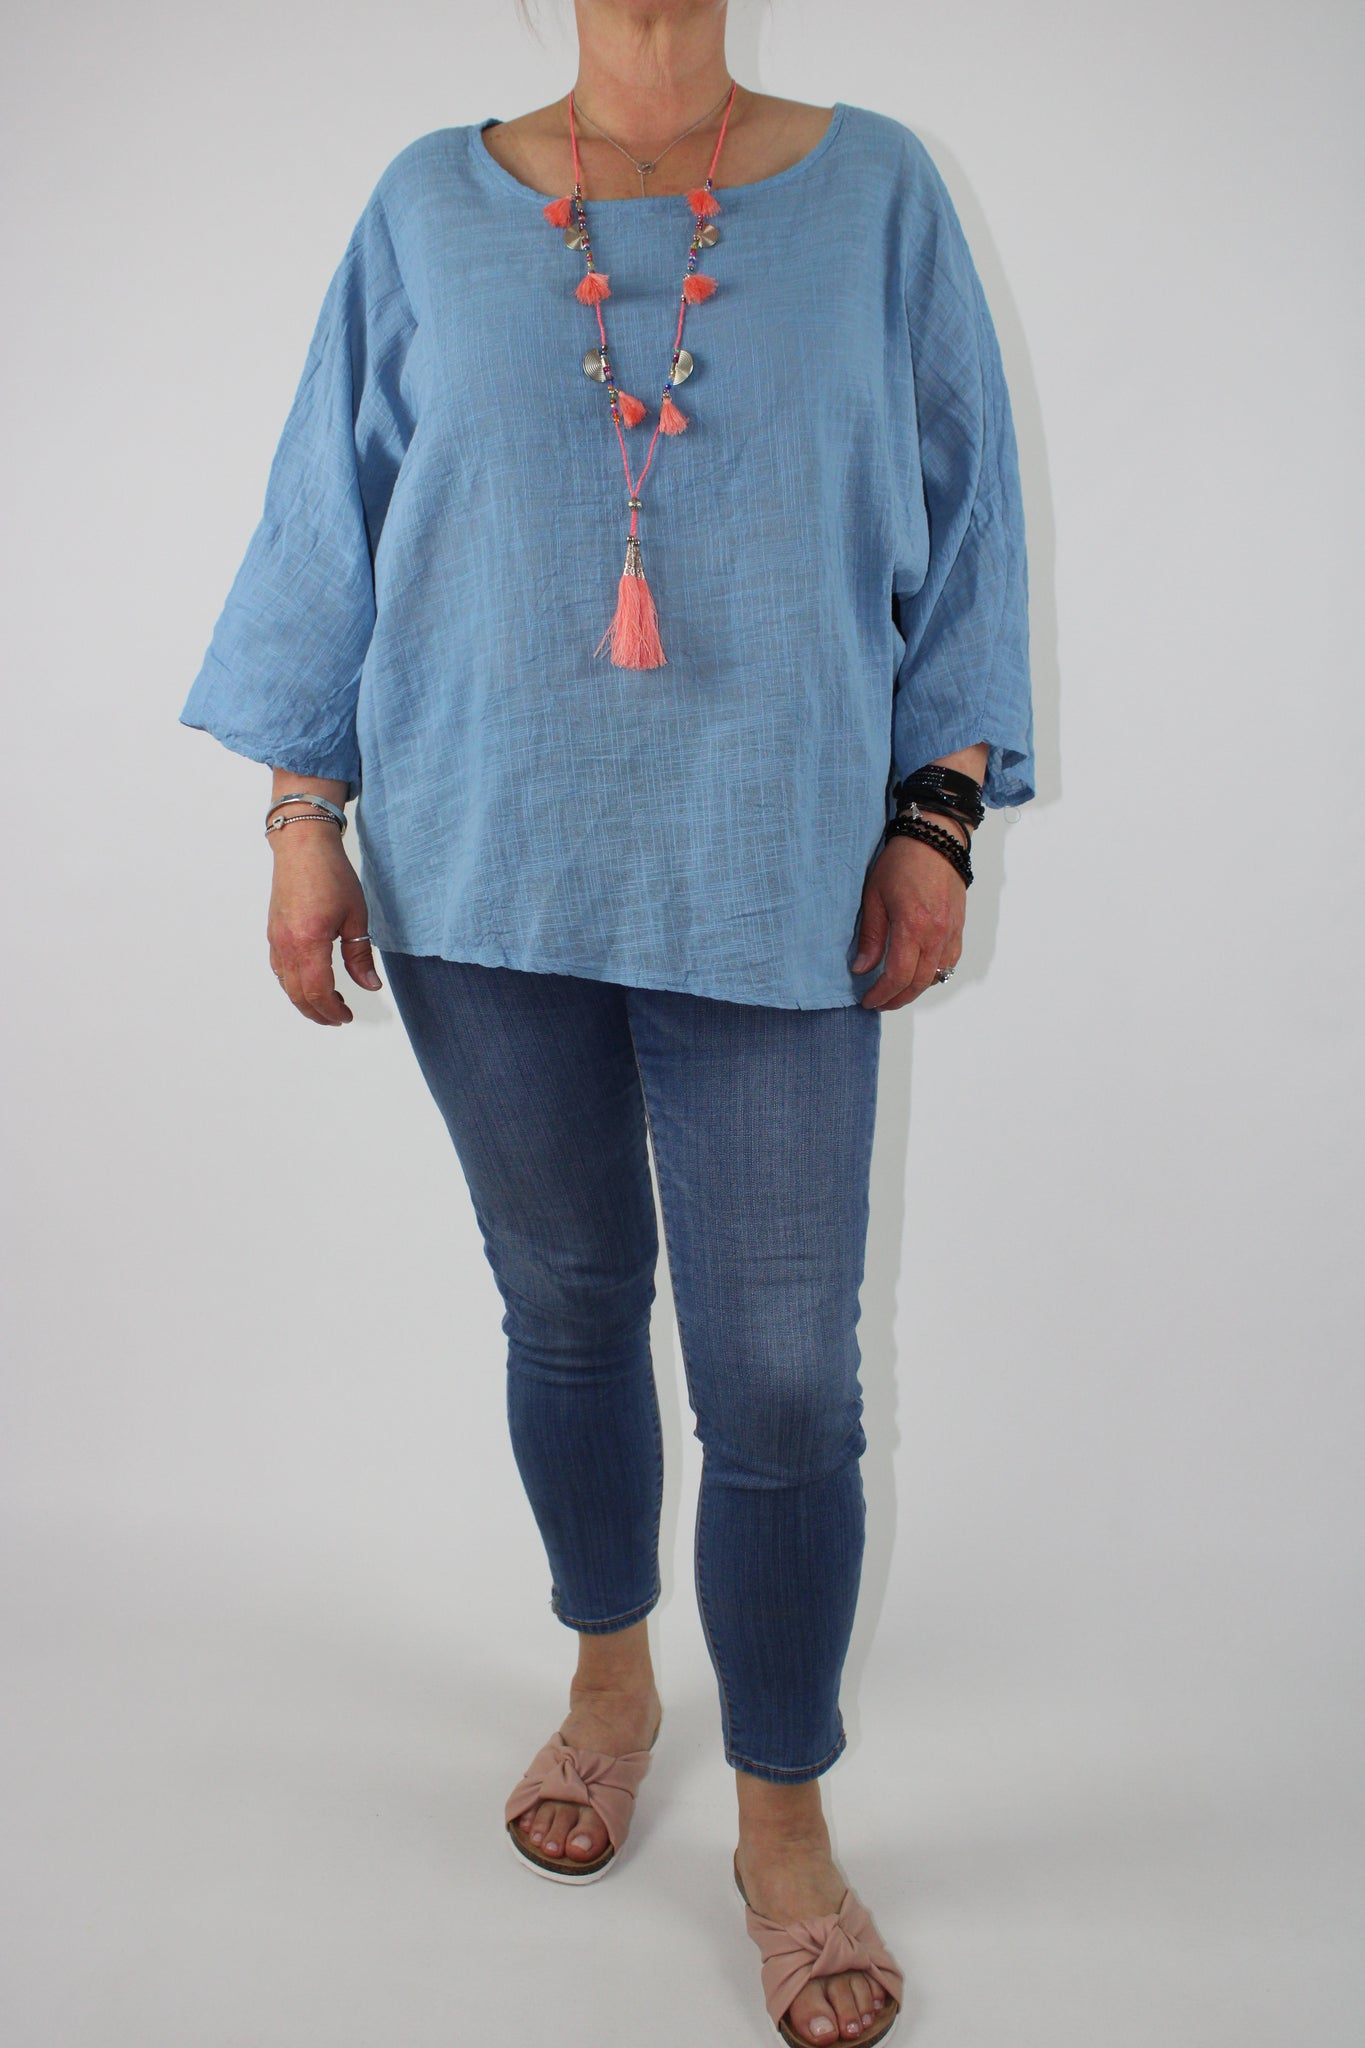 Cotton Top Lightweight Over-Top Size 10 12 14 16 18 20 in Denim Blue